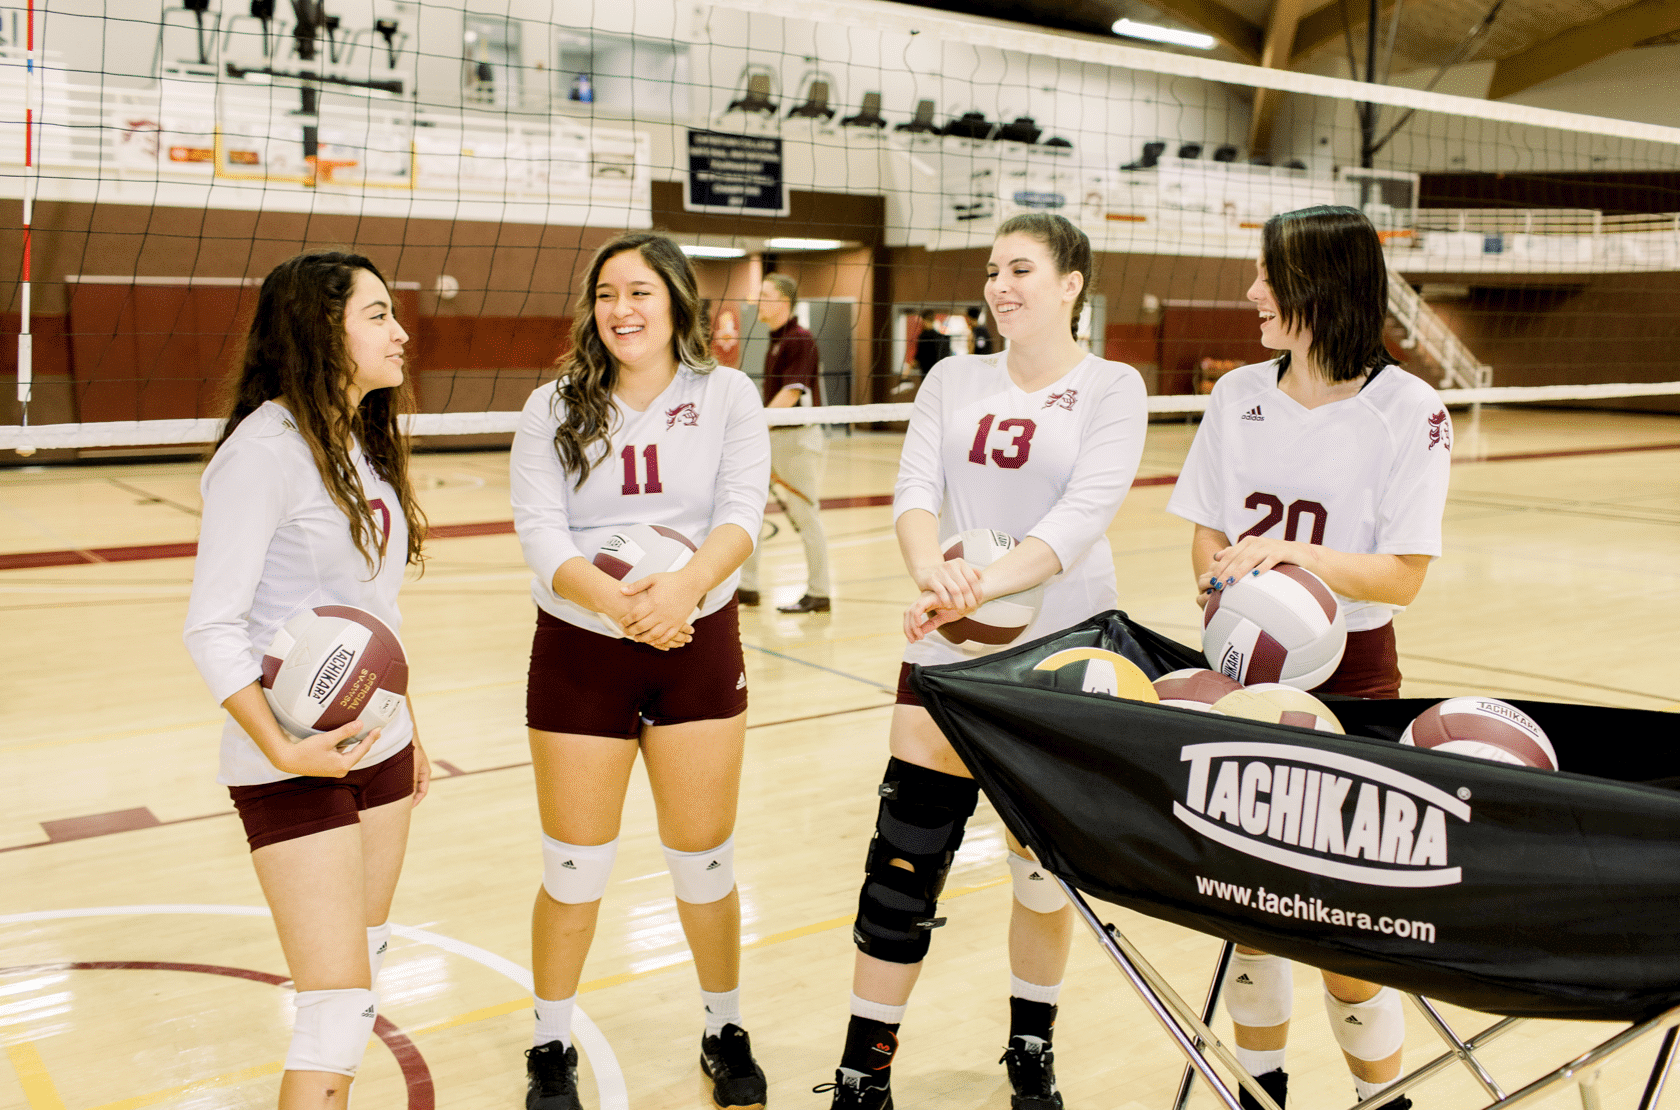 A group of volleyball players stand together talking, in uniform, each holds a volleyball